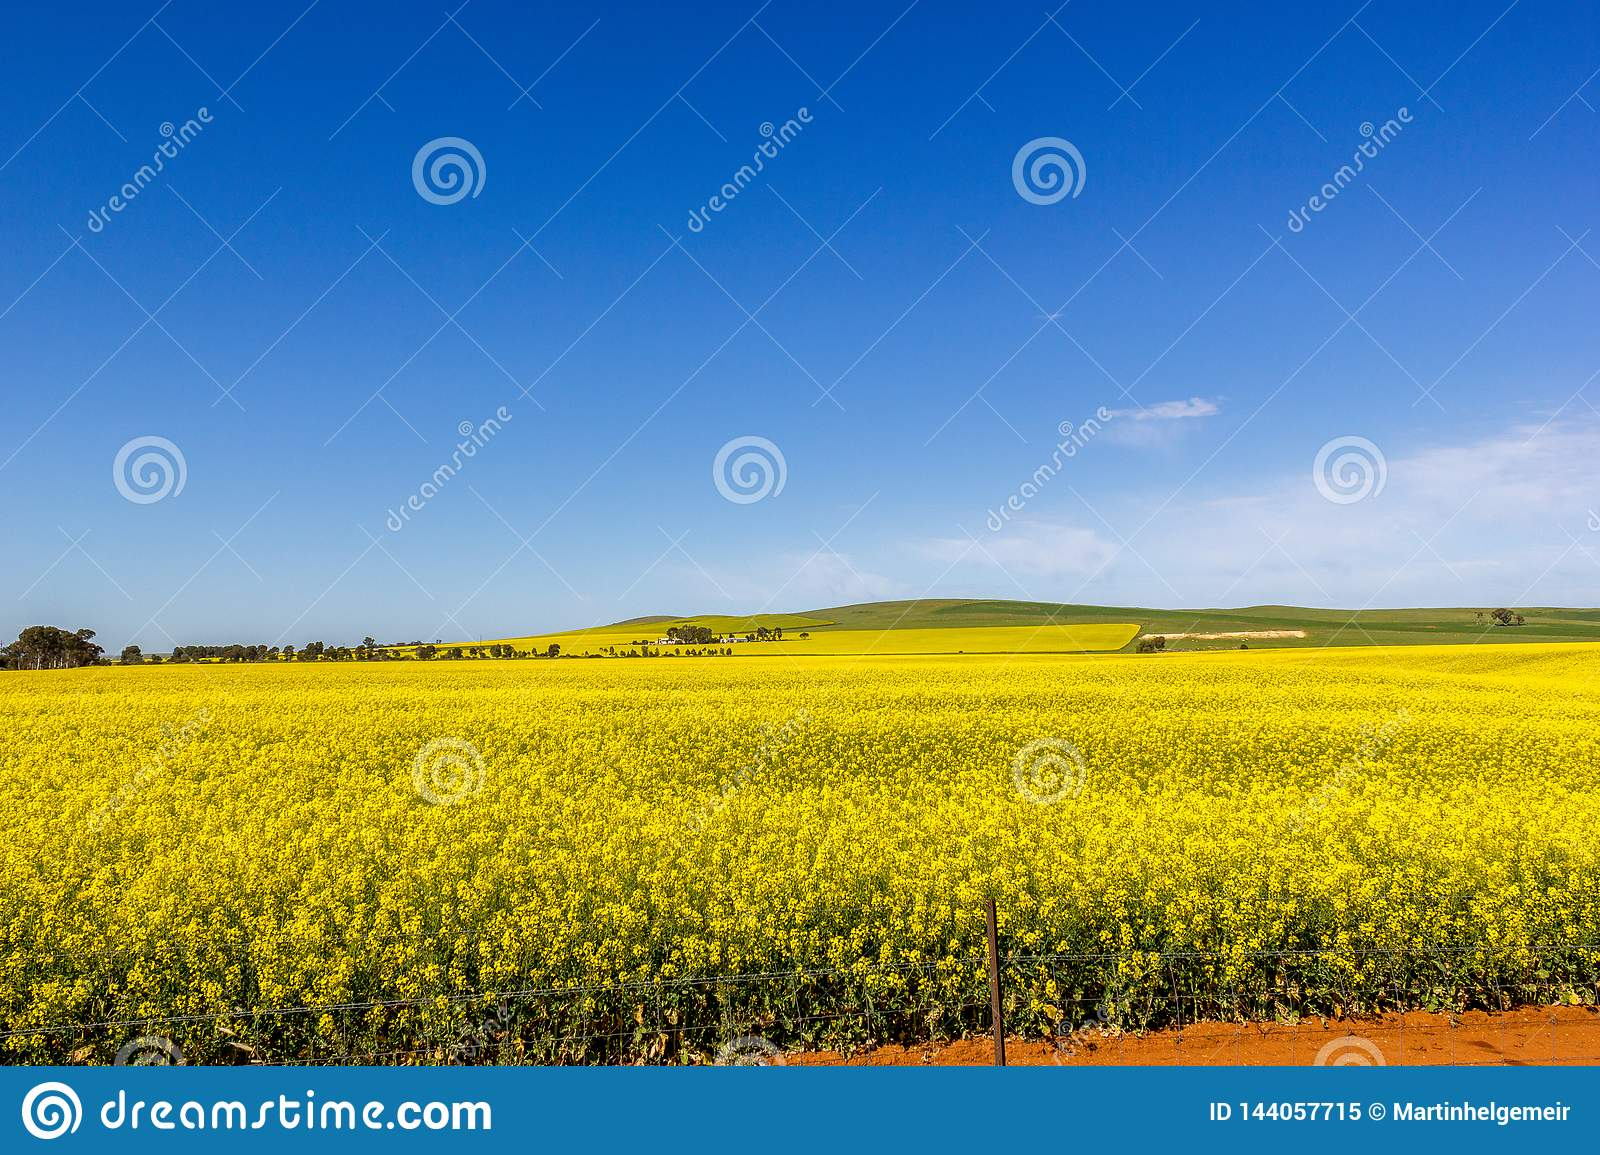 golden field of flowering rapeseed with blue sky - brassica napus - plant for green energy and oil industry, Mildura, South